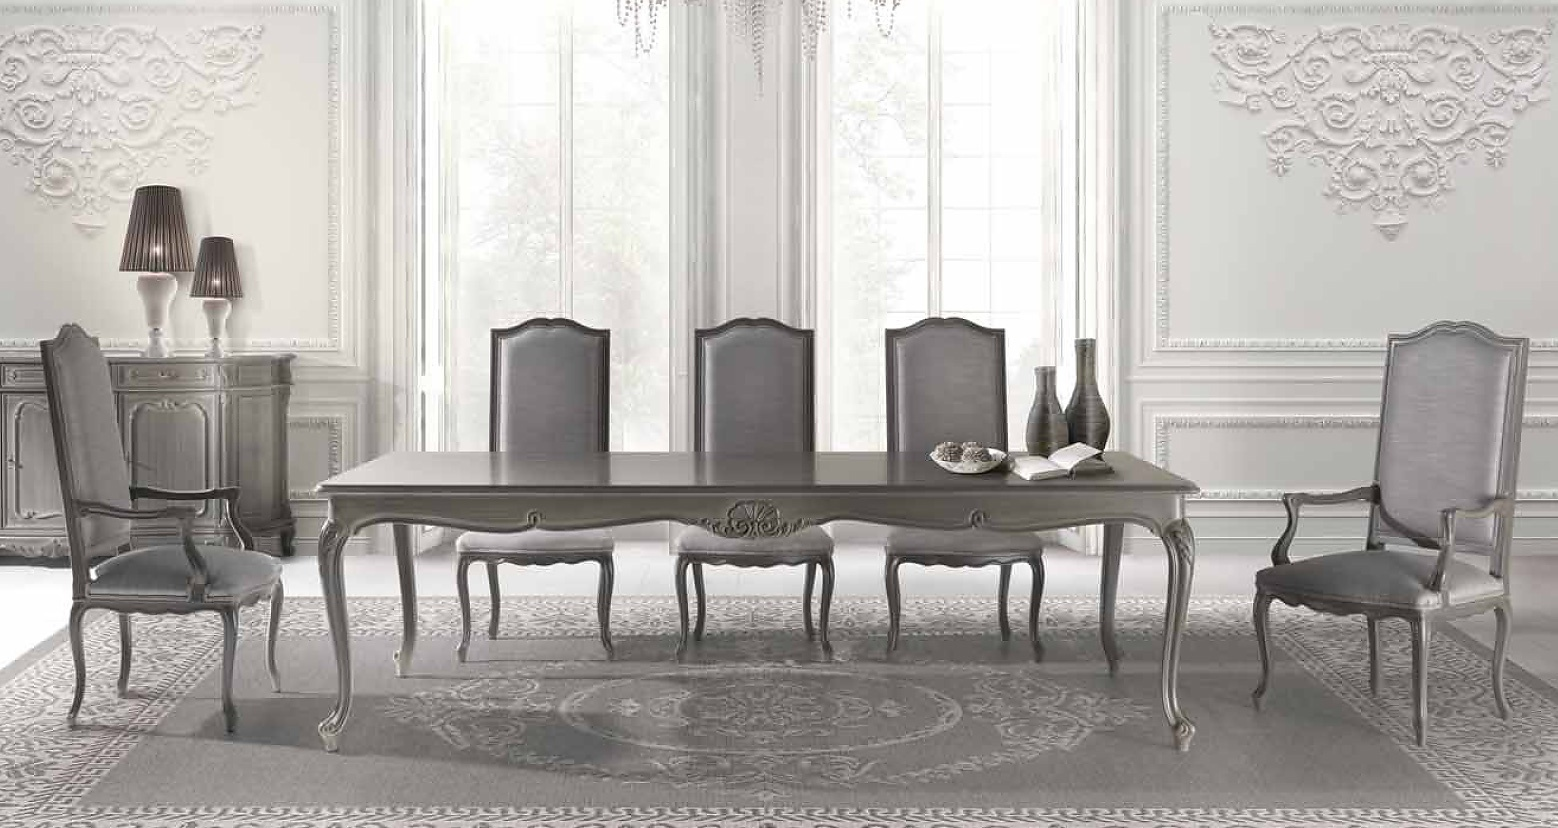 angelo cappellini chairs. chair with high back mediterraneo, angelo cappellini chairs luxury furniture mr